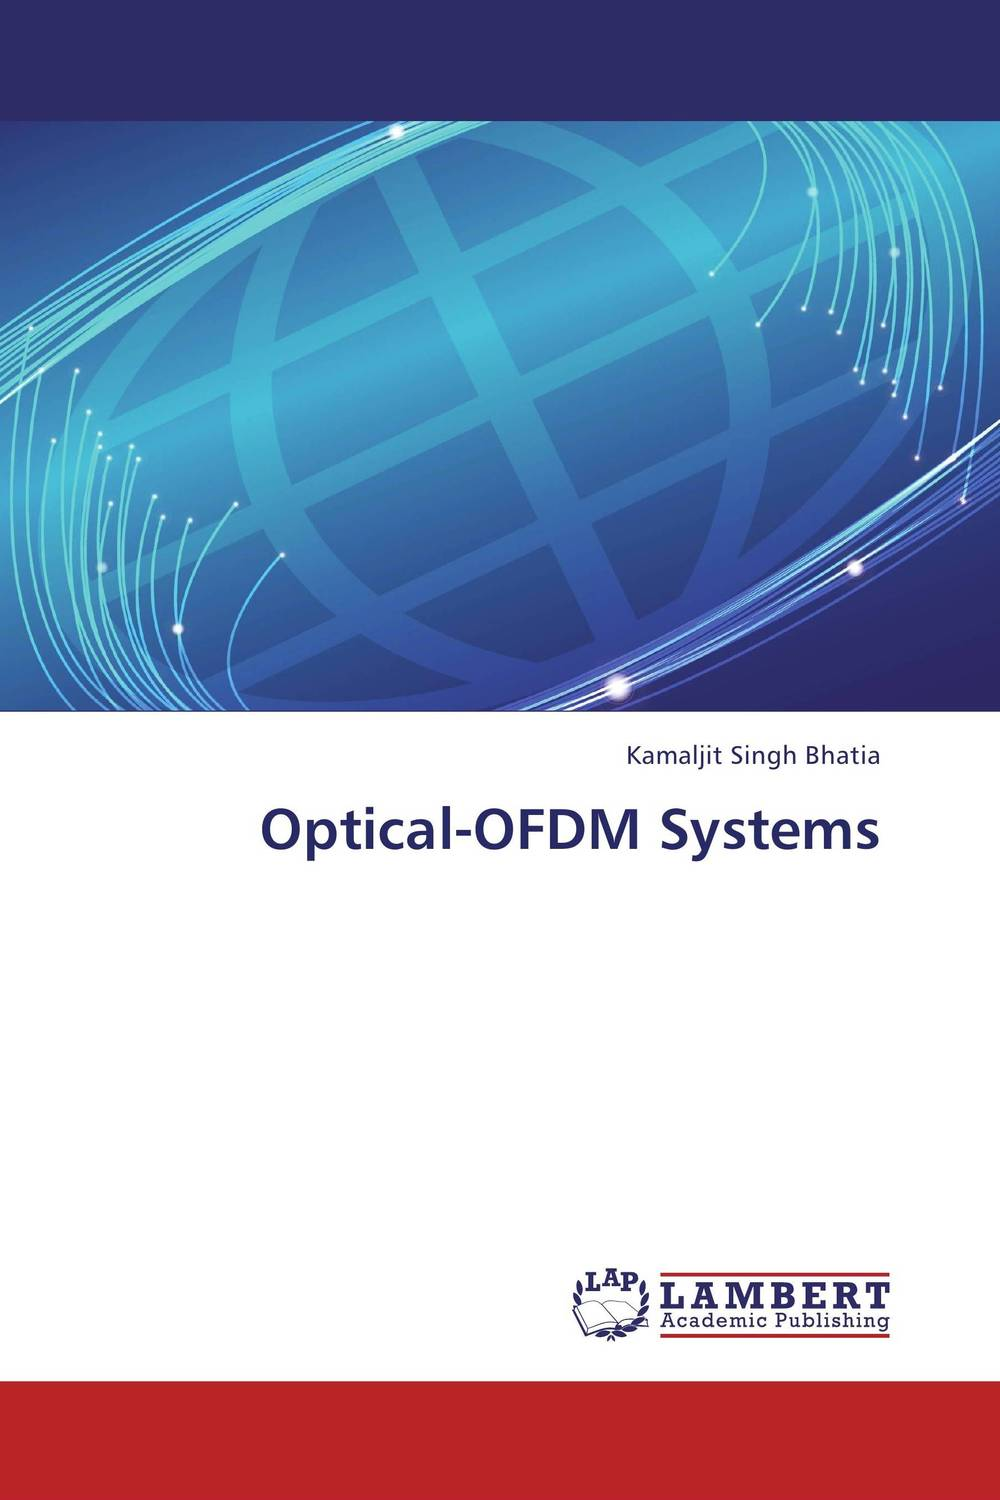 Optical-OFDM Systems katsunari okamoto fundamentals of optical waveguides